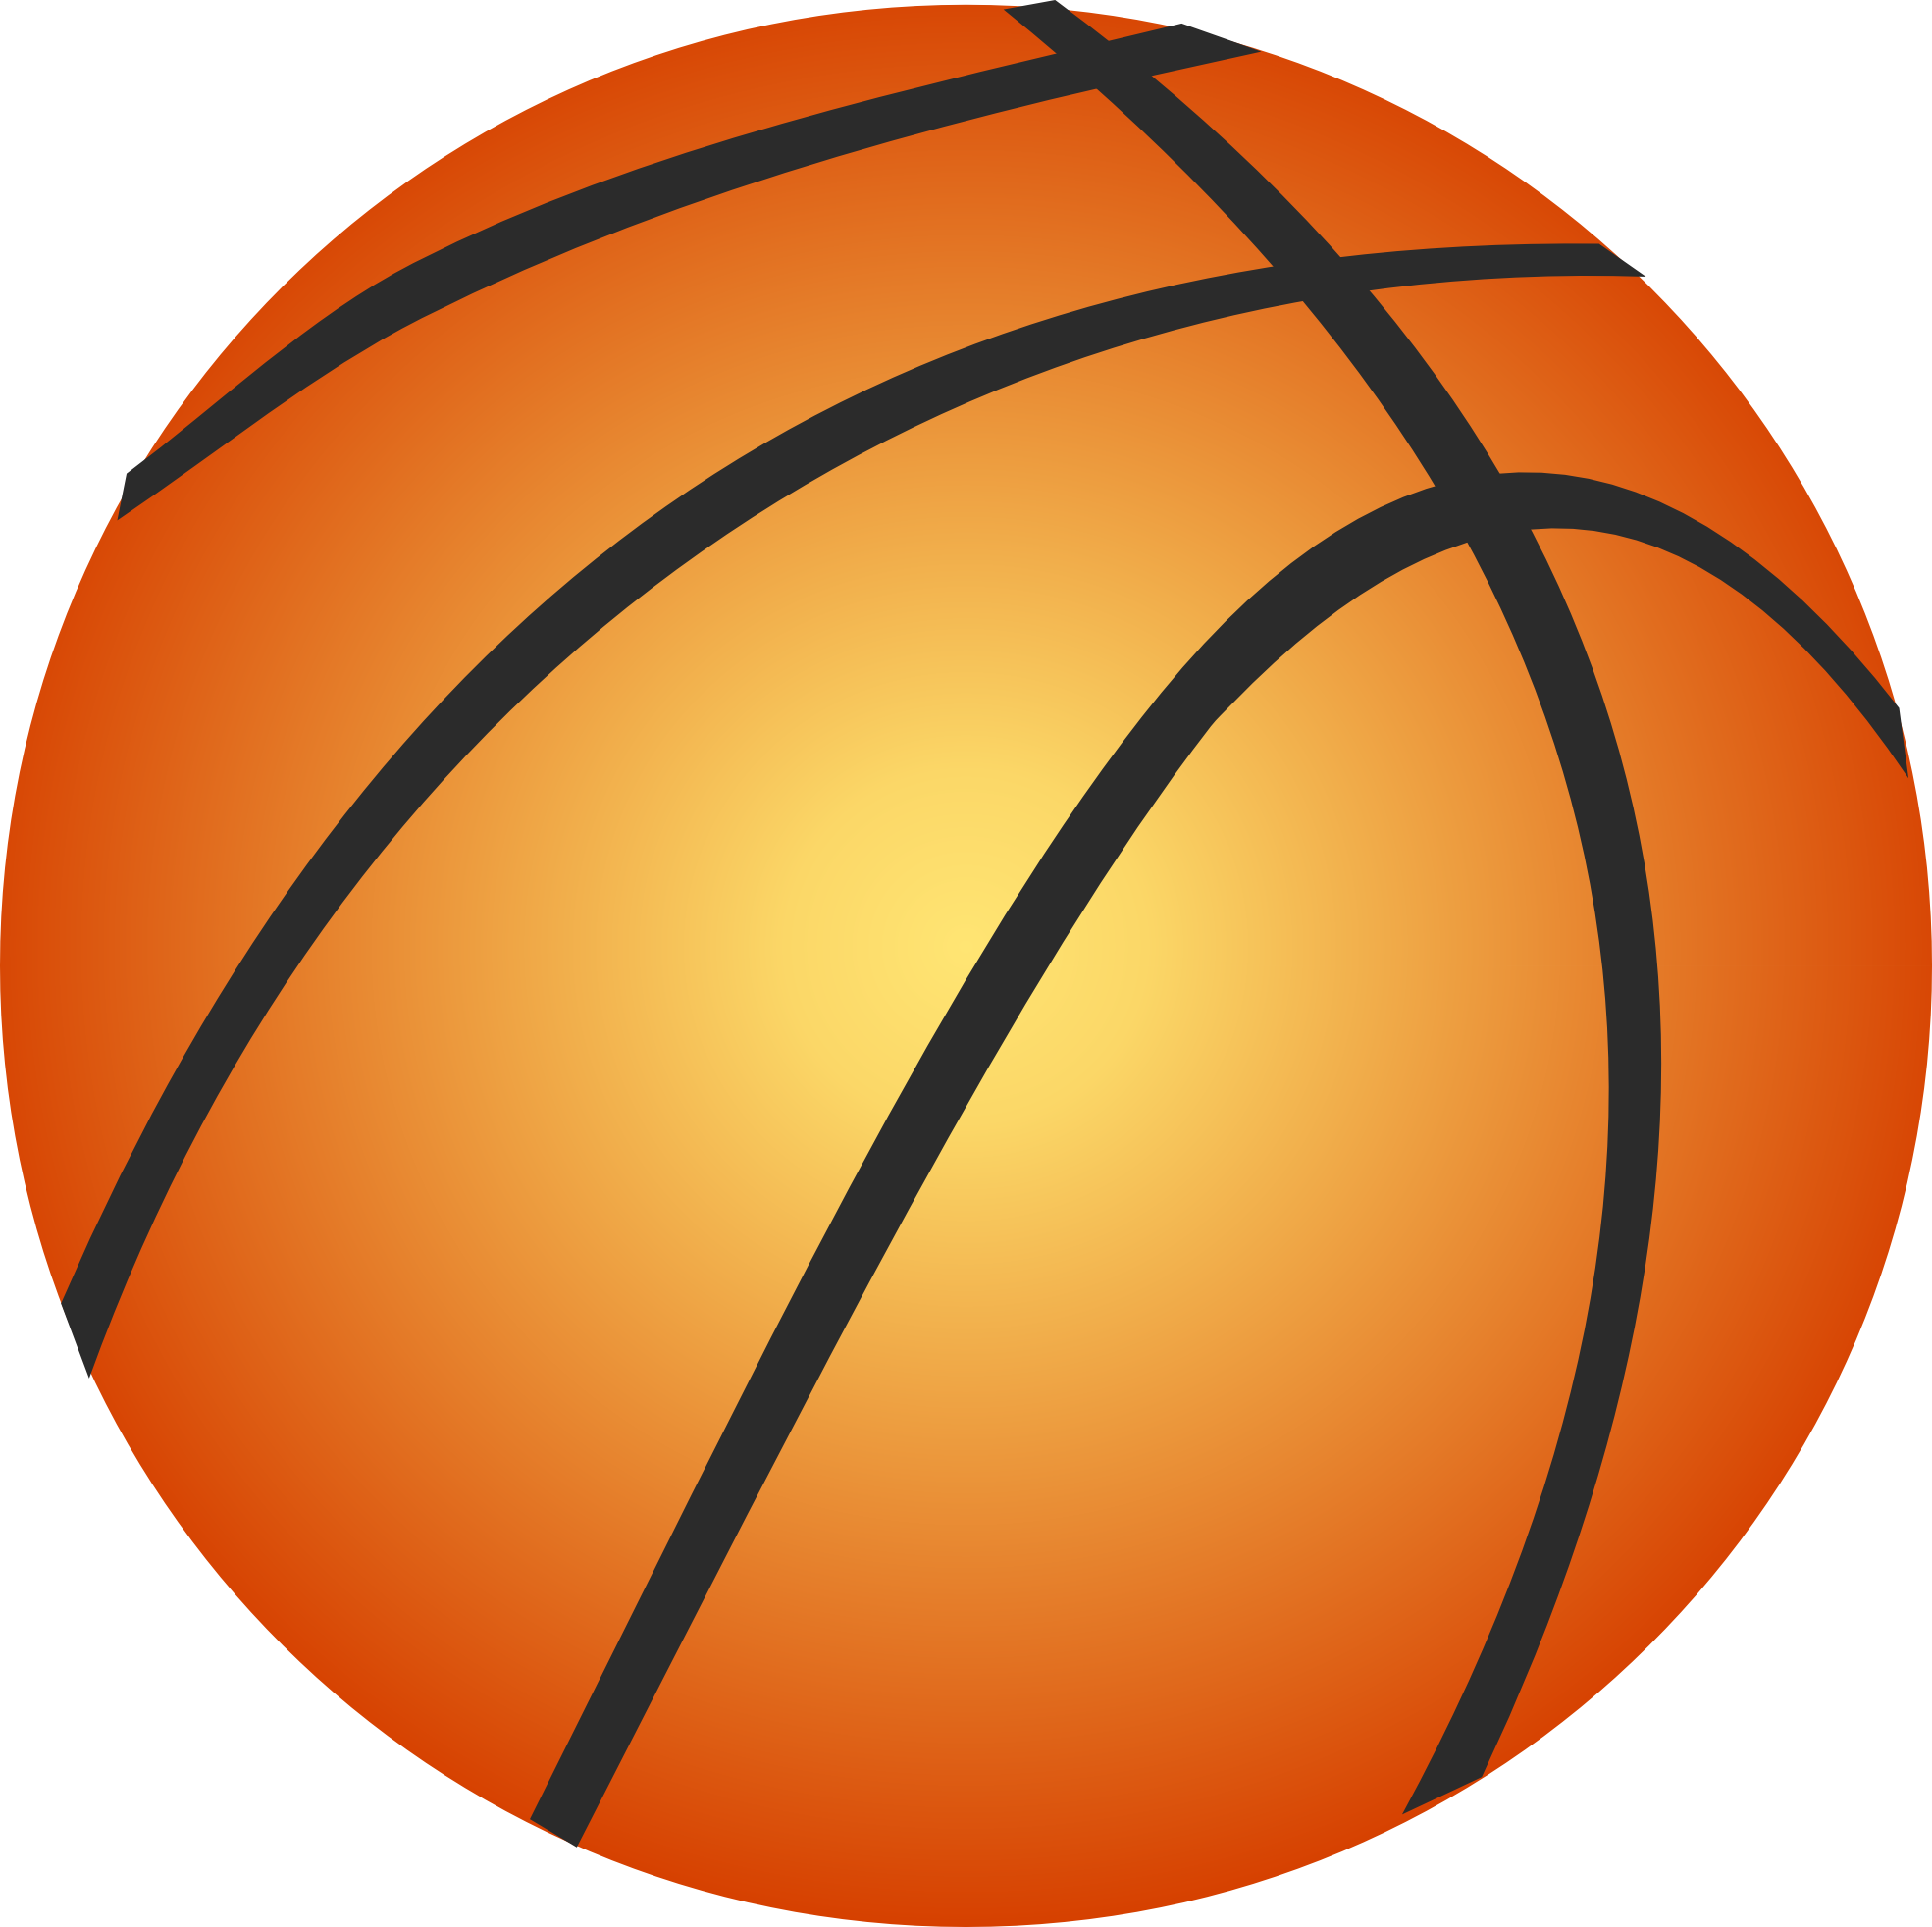 Basketball free throw clipart picture black and white library Basketball Clipart | Clipart Panda - Free Clipart Images picture black and white library